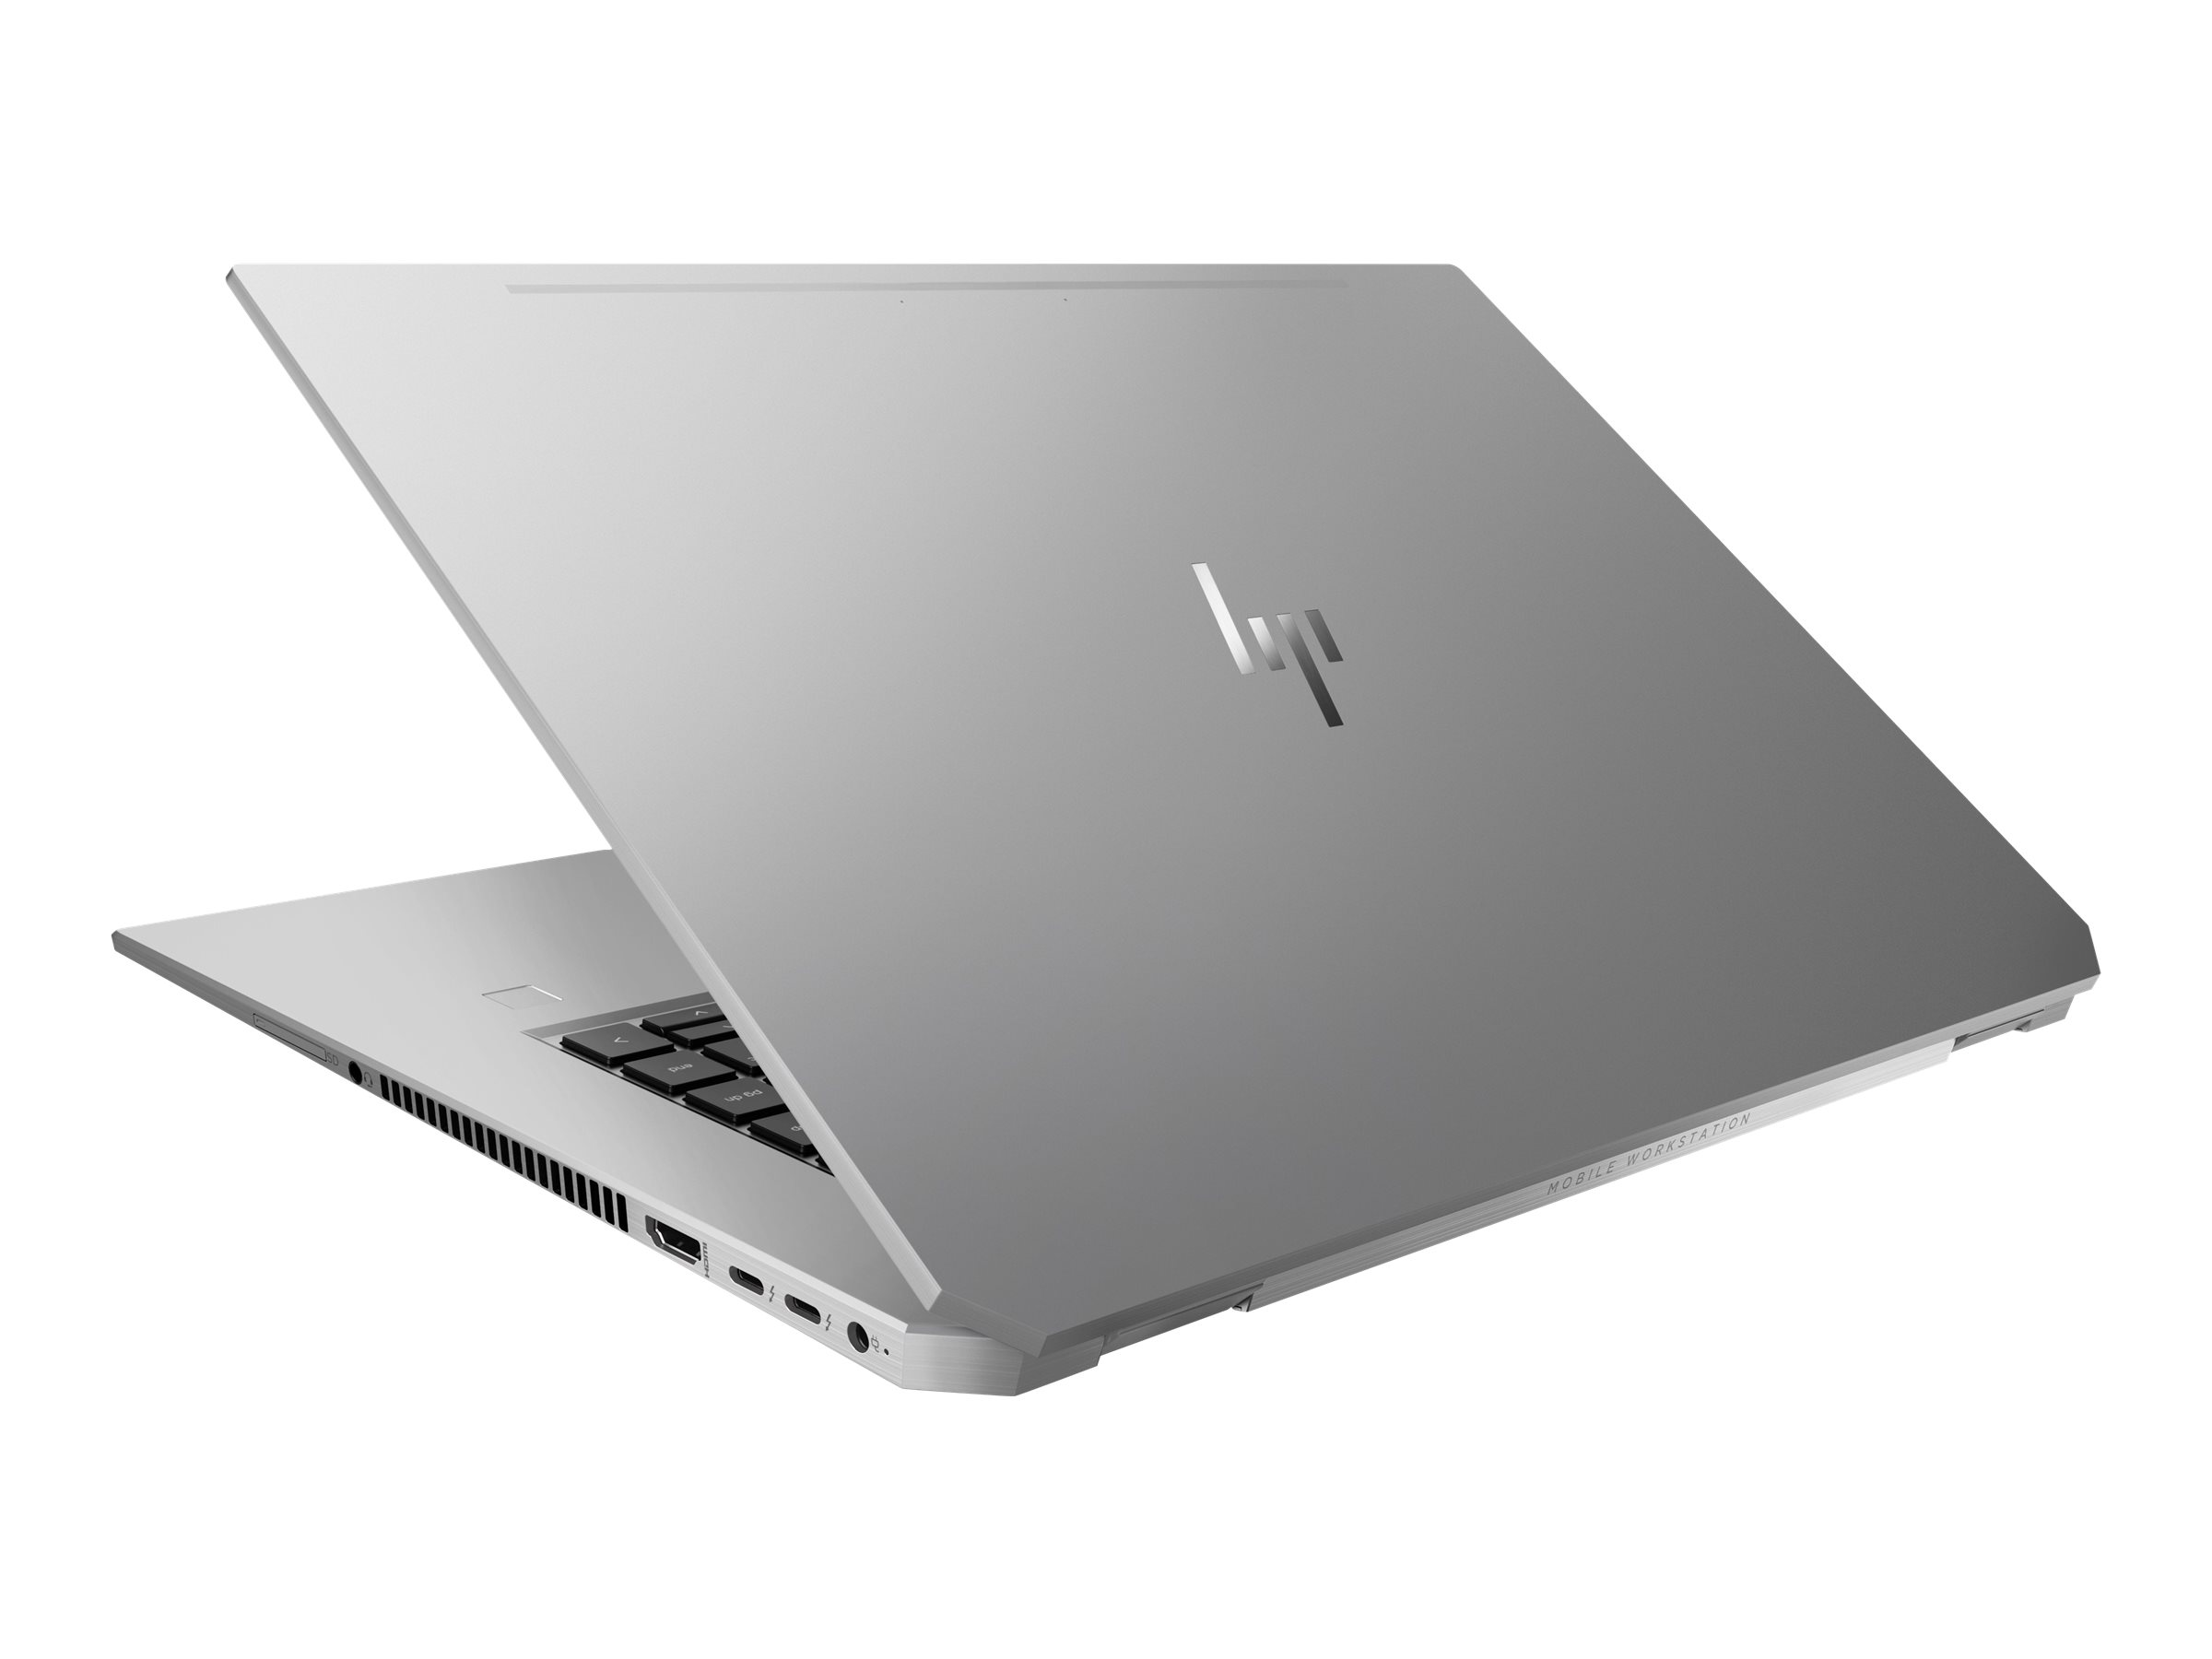 "HP ZBook Studio G5 Mobile Workstation - Core i7 9750H / 2.6 GHz - Win 10 Pro 64-Bit - 16 GB RAM - 512 GB SSD NVMe, TLC - 39.6 cm (15.6"")"